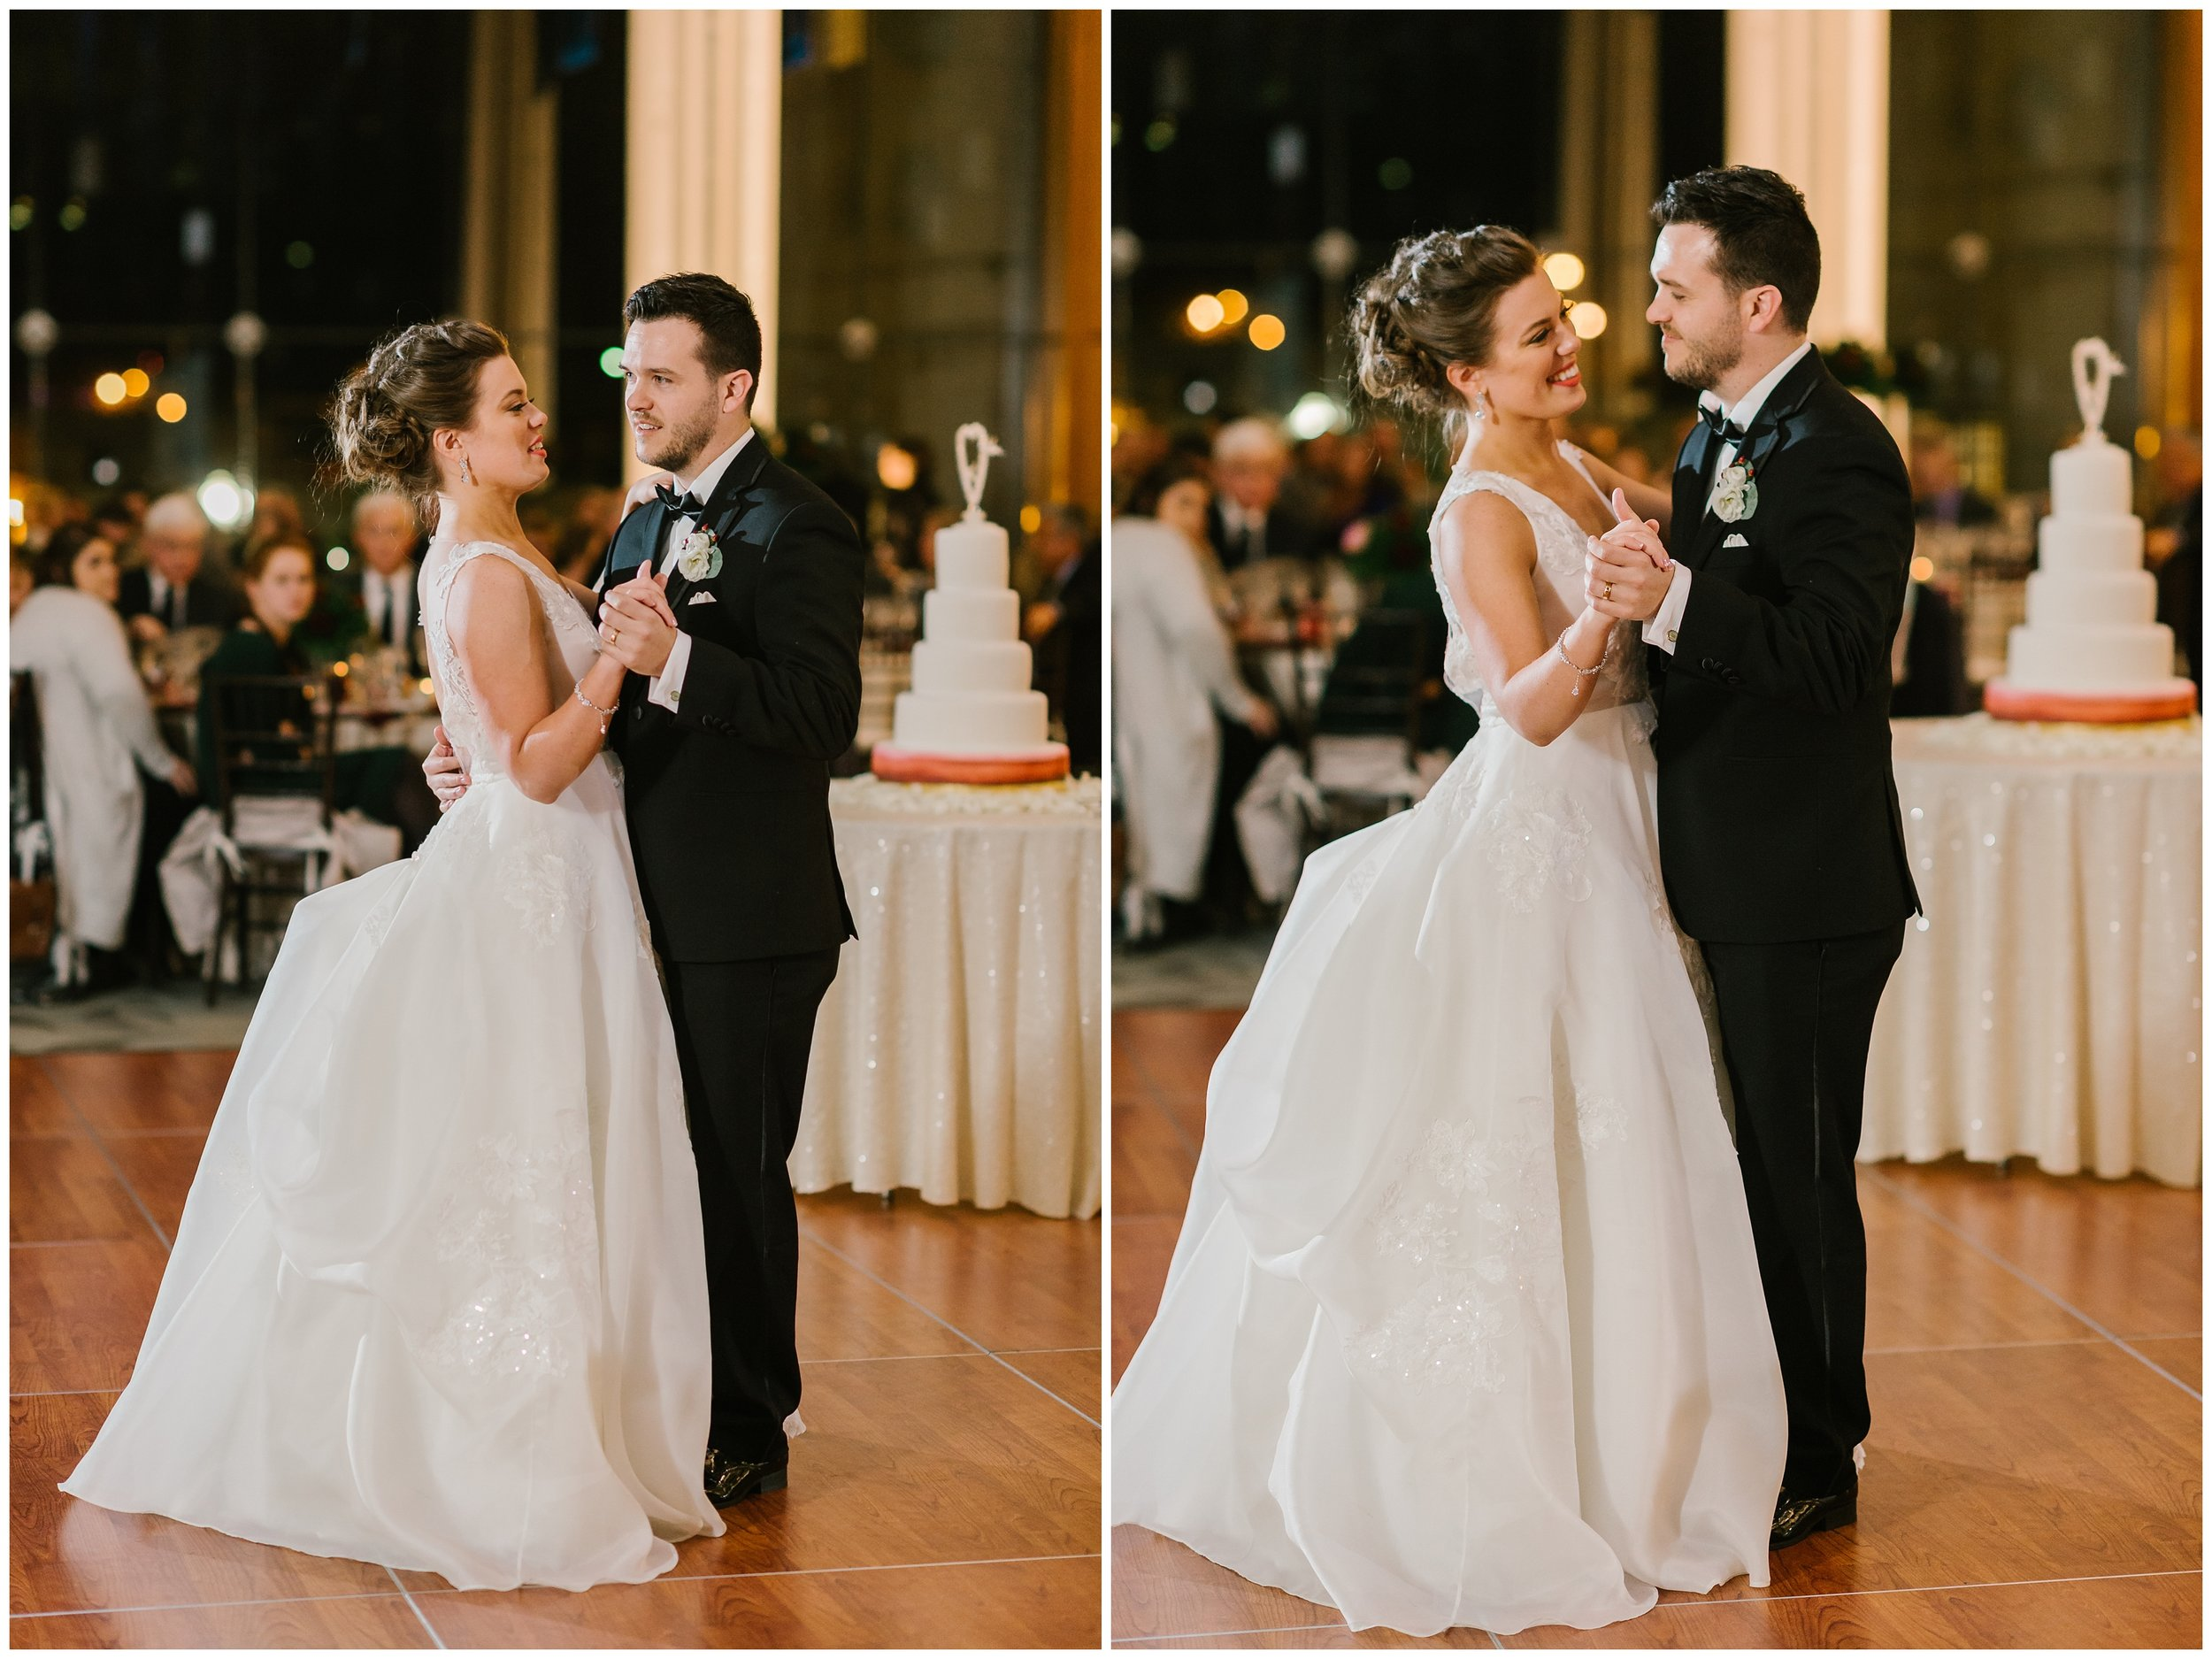 Rebecca_Shehorn_Photography_Indianapolis_Wedding_Photographer_7771.jpg